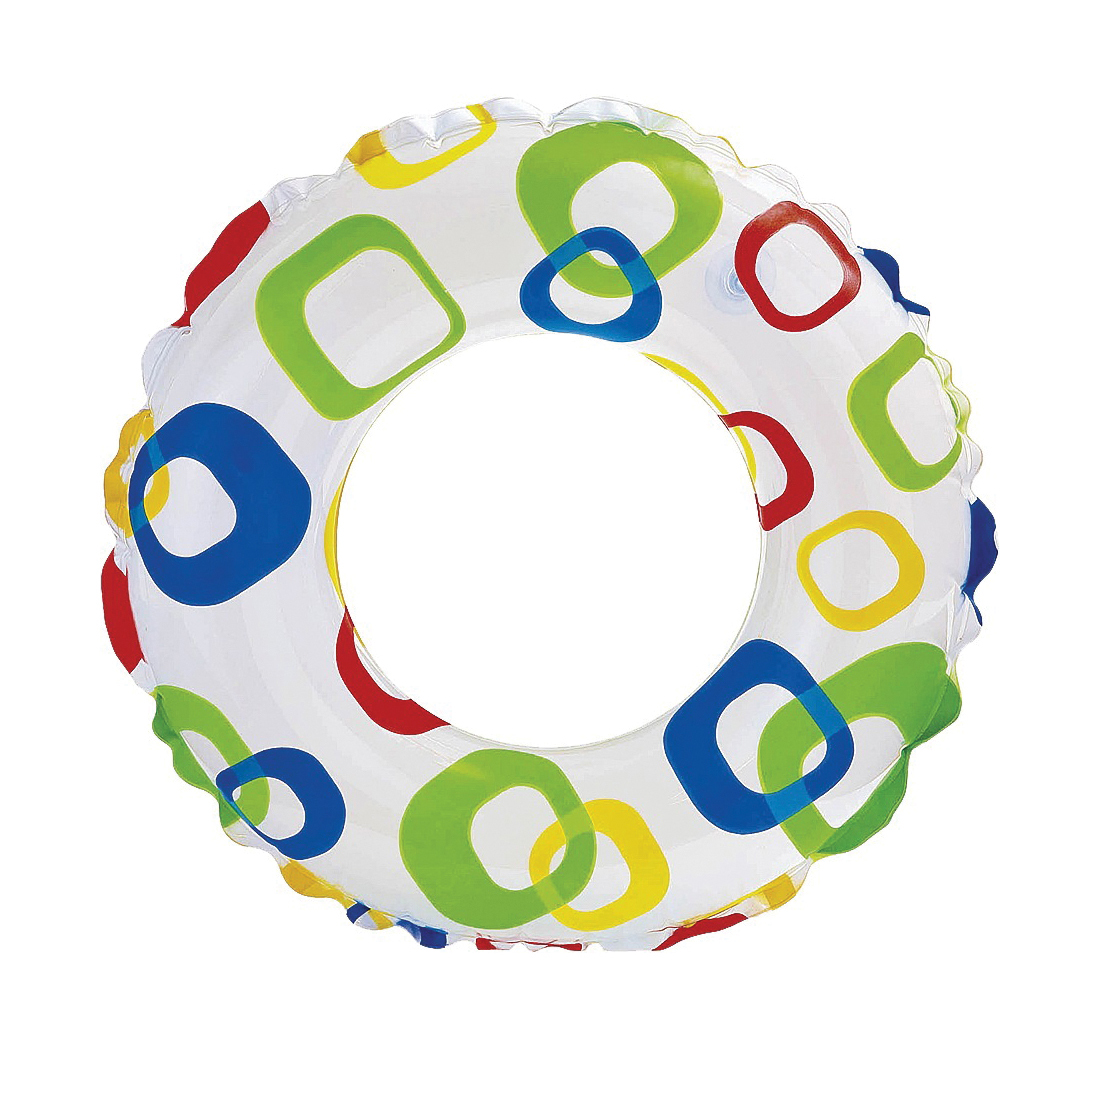 Picture of INTEX 59230EP Lively Print Swim Ring, Vinyl, Assorted